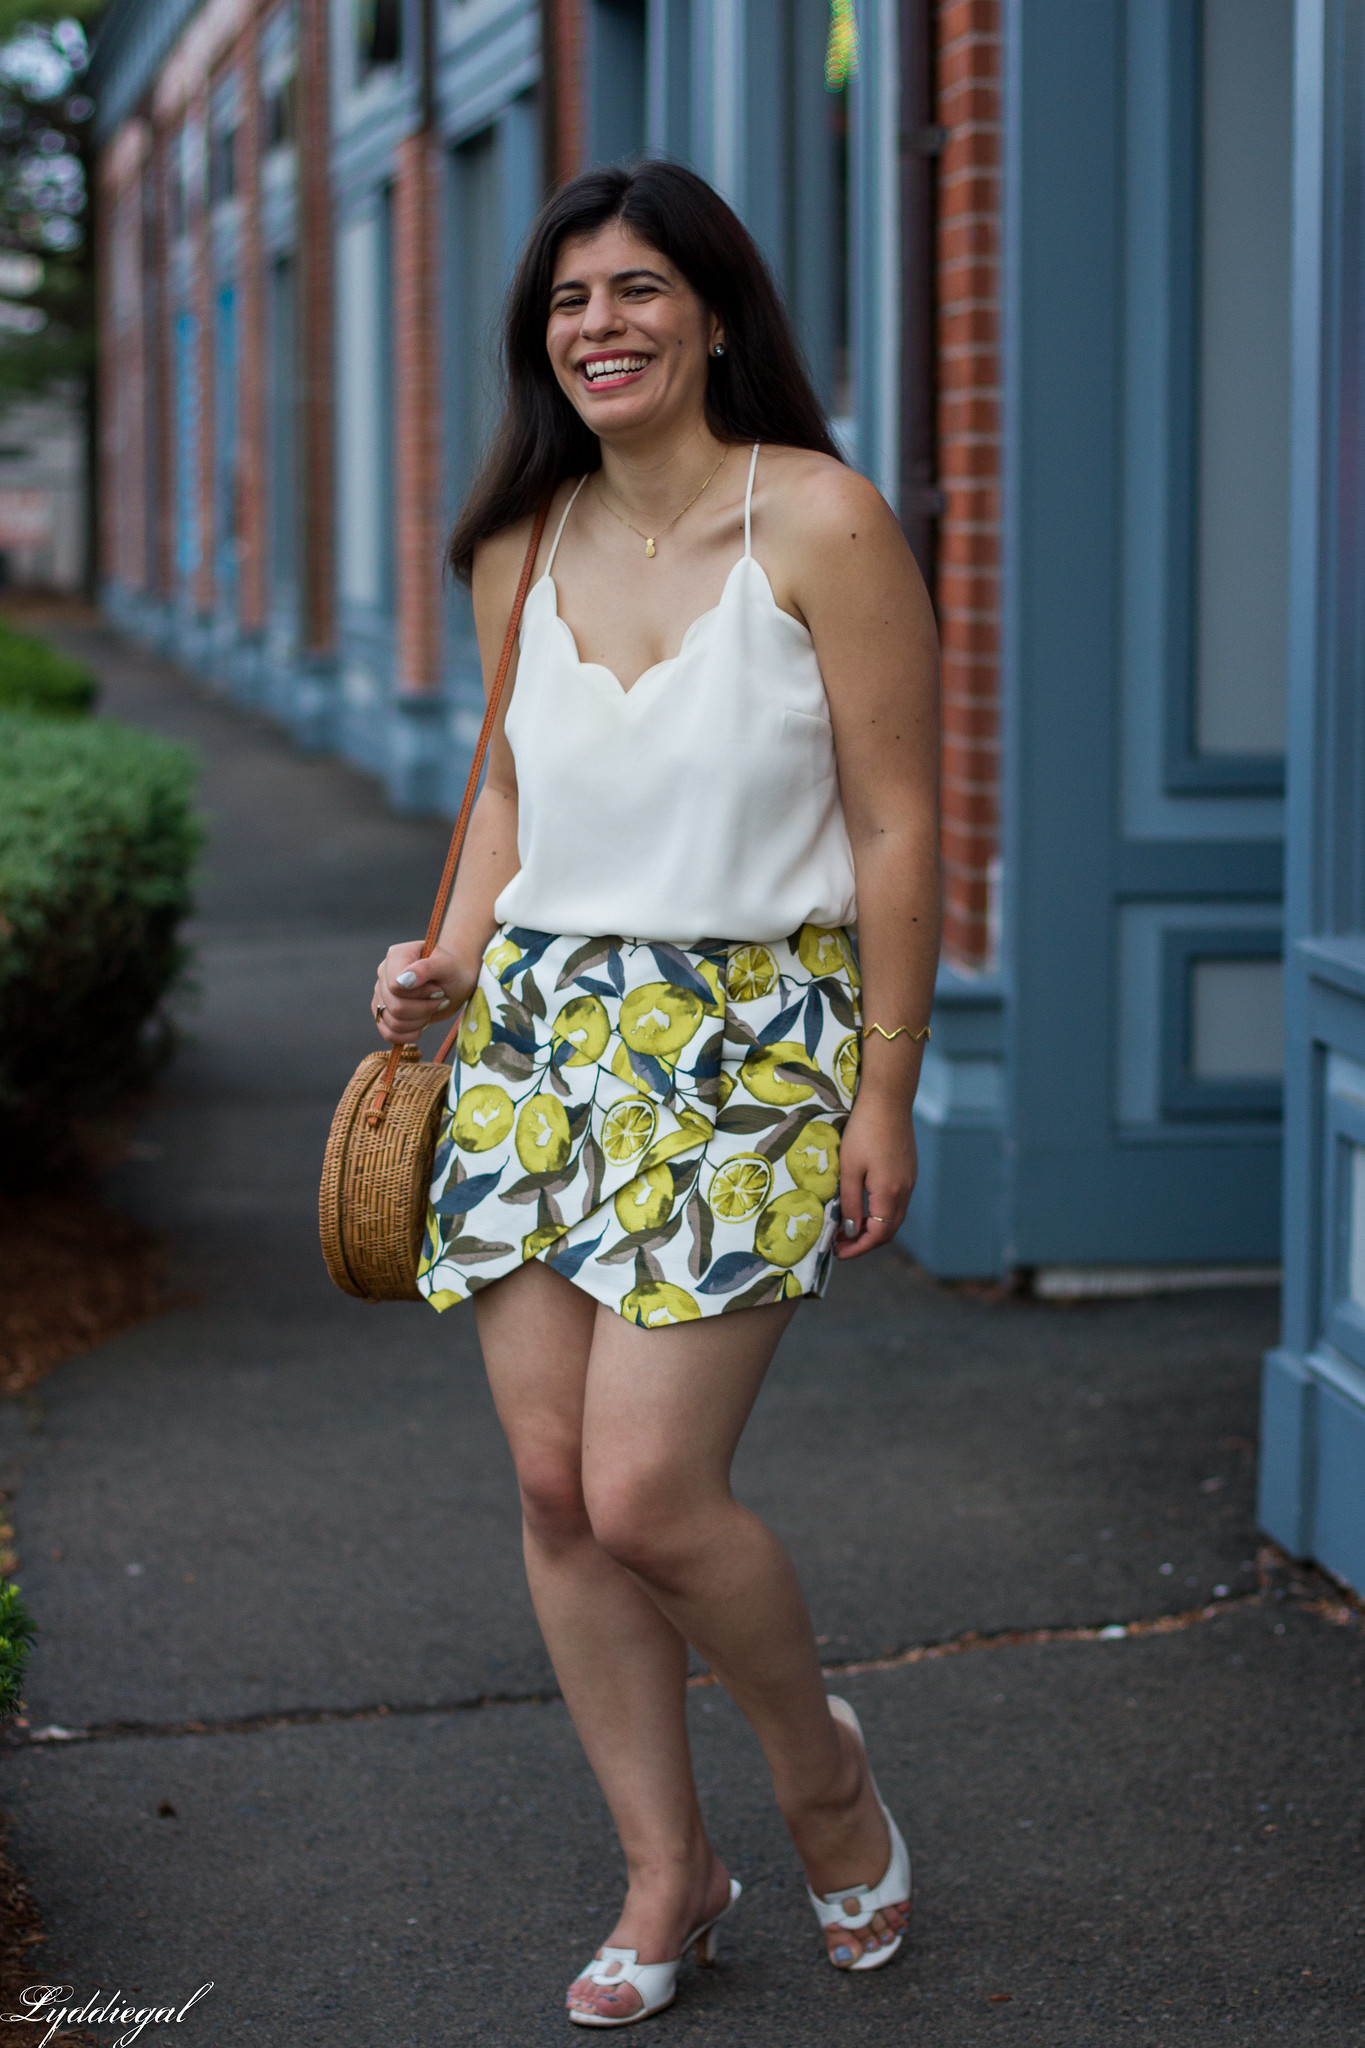 Lemon print skort, scalloped cami, round straw bag, ferragamo slides-2.jpg